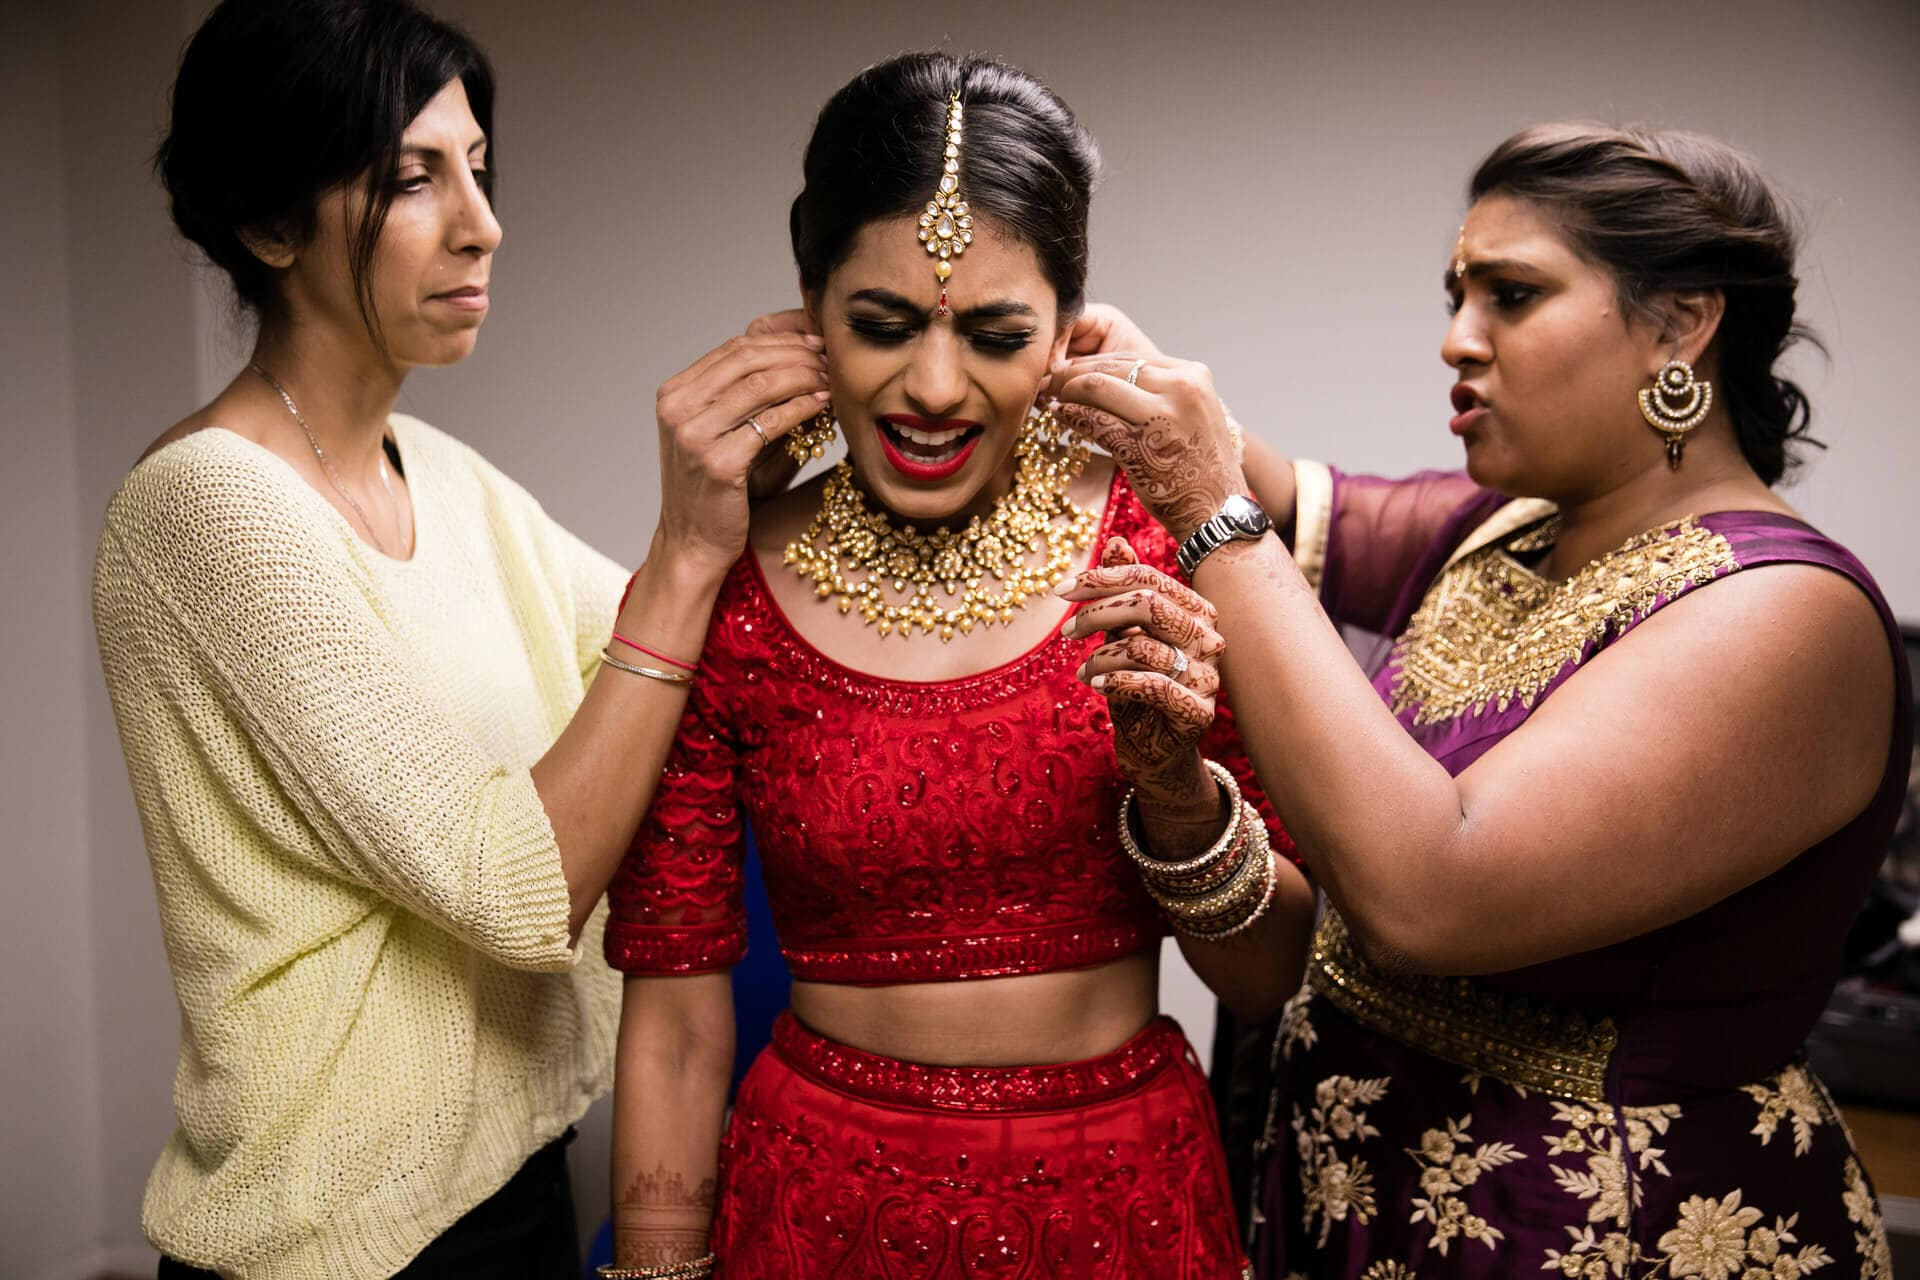 Hindu wedding bride getting ready